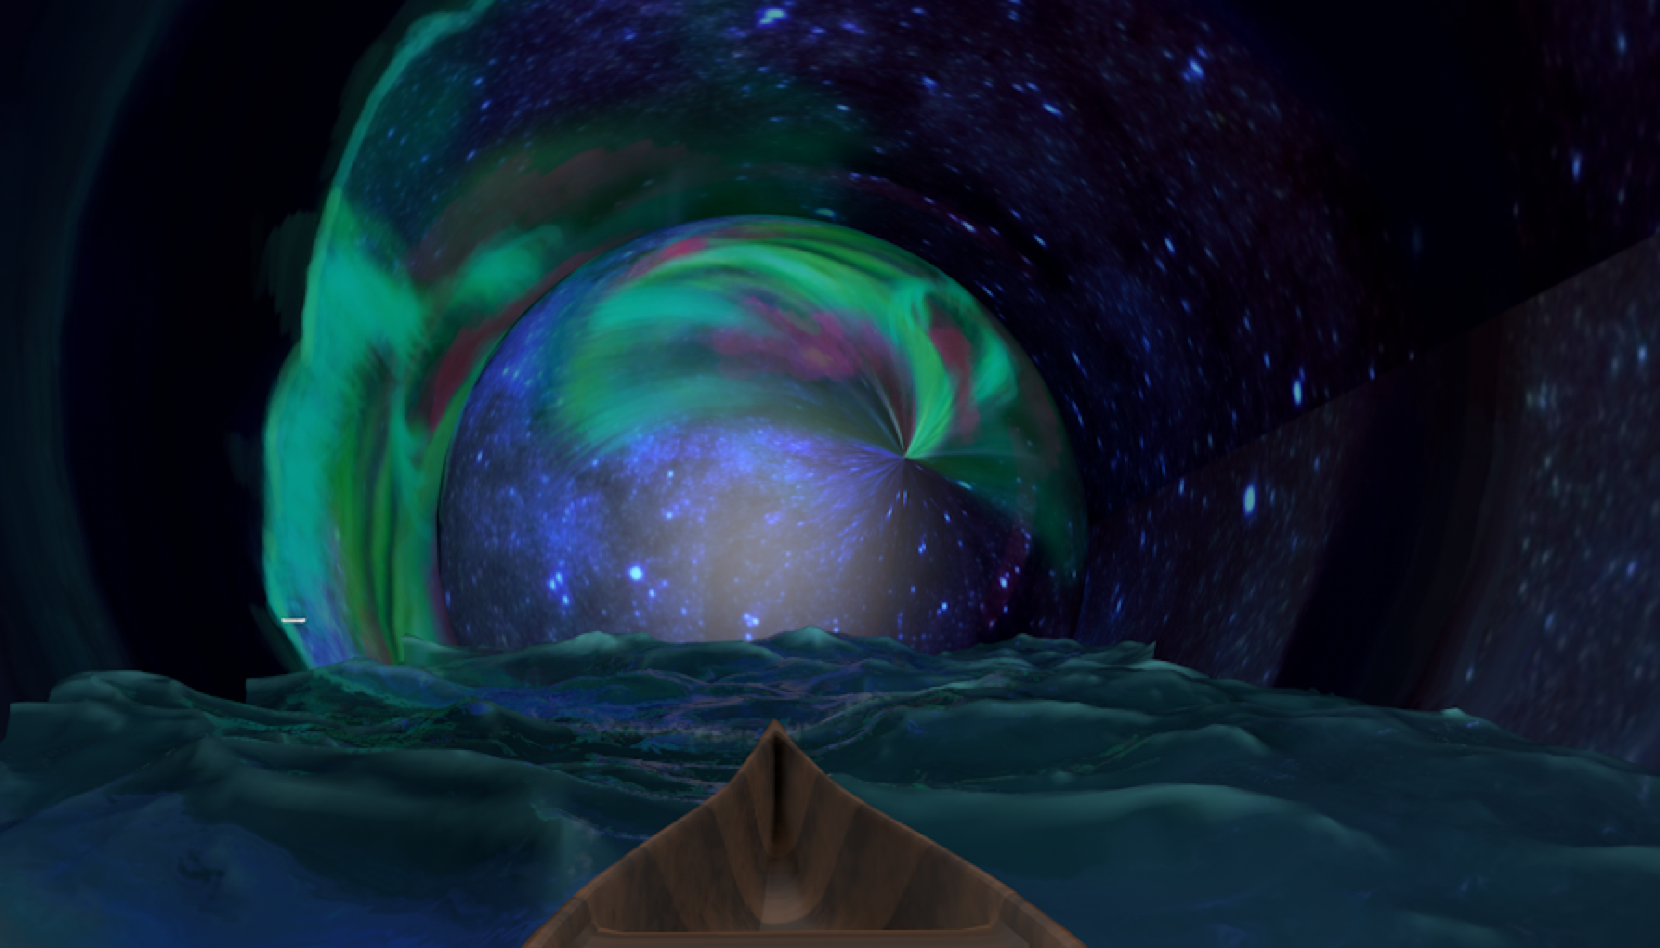 Warrior's Tunnel - The Northern Light is behind the mountain! Start your Warrior Journey from here!